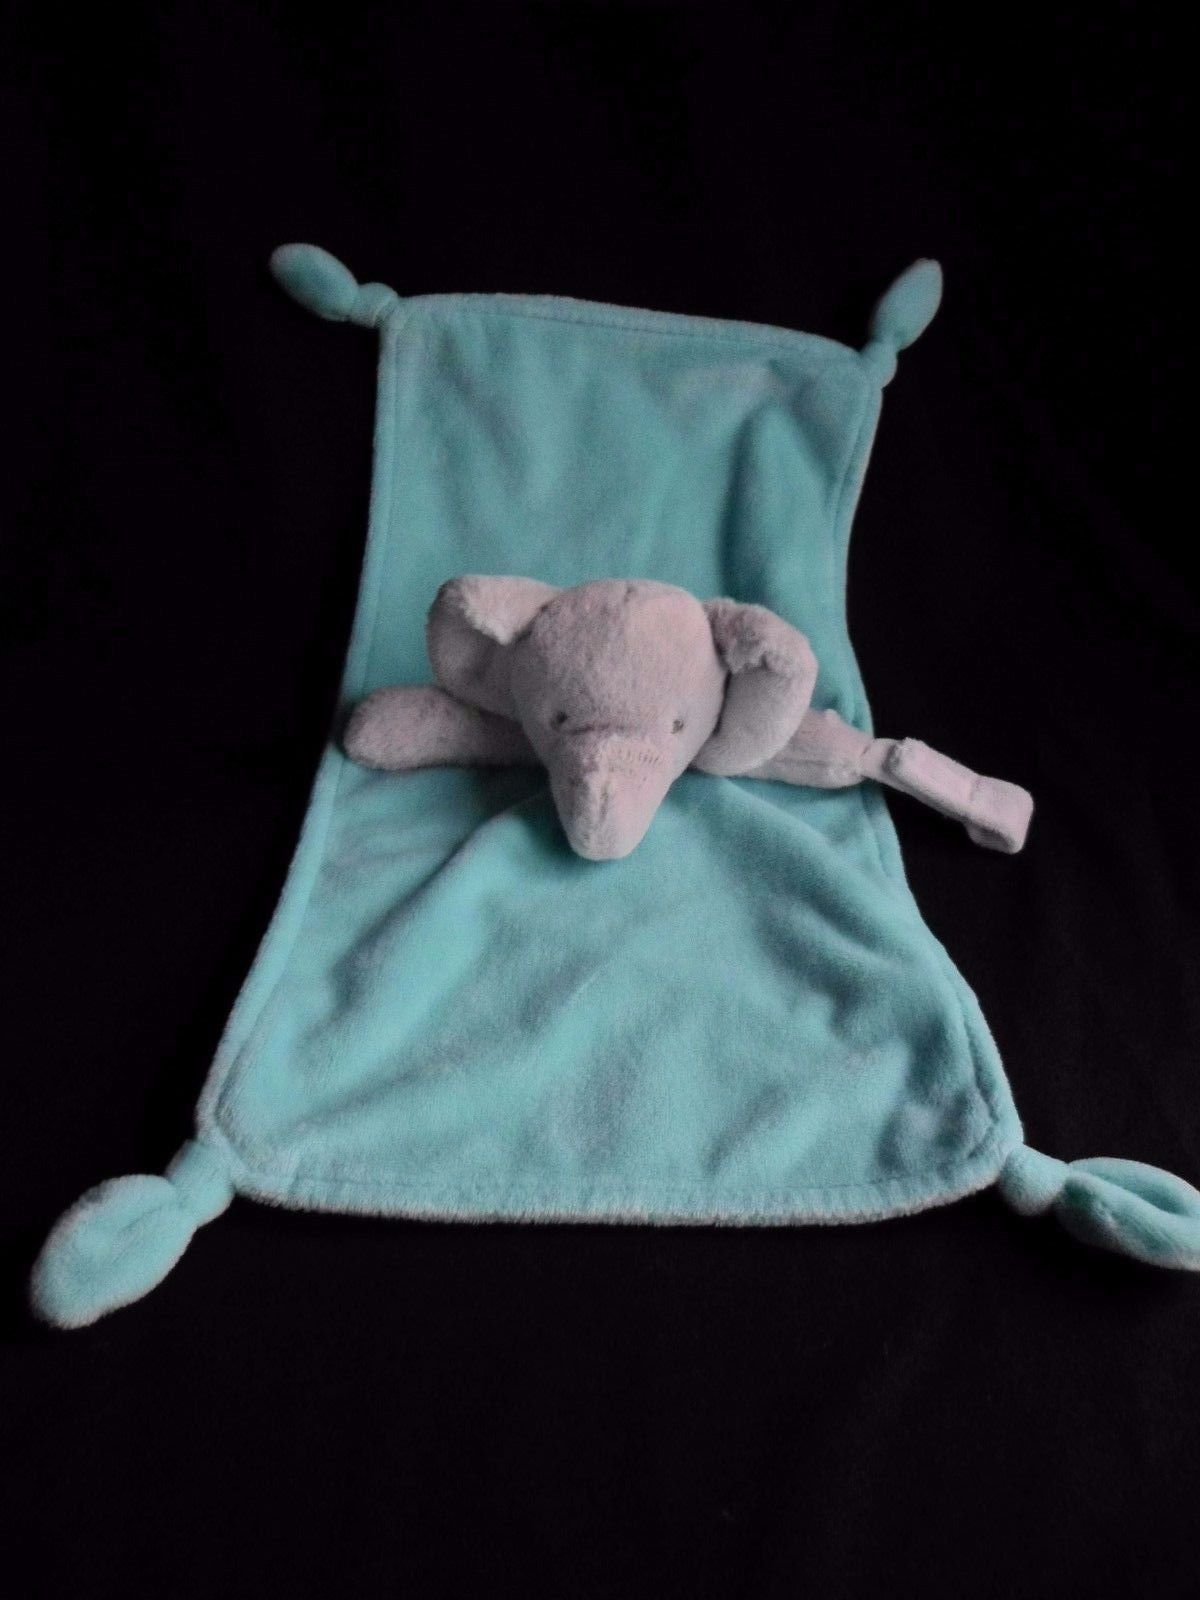 Carter's Baby Elephant security blanket with pacifier holder Aqua blue